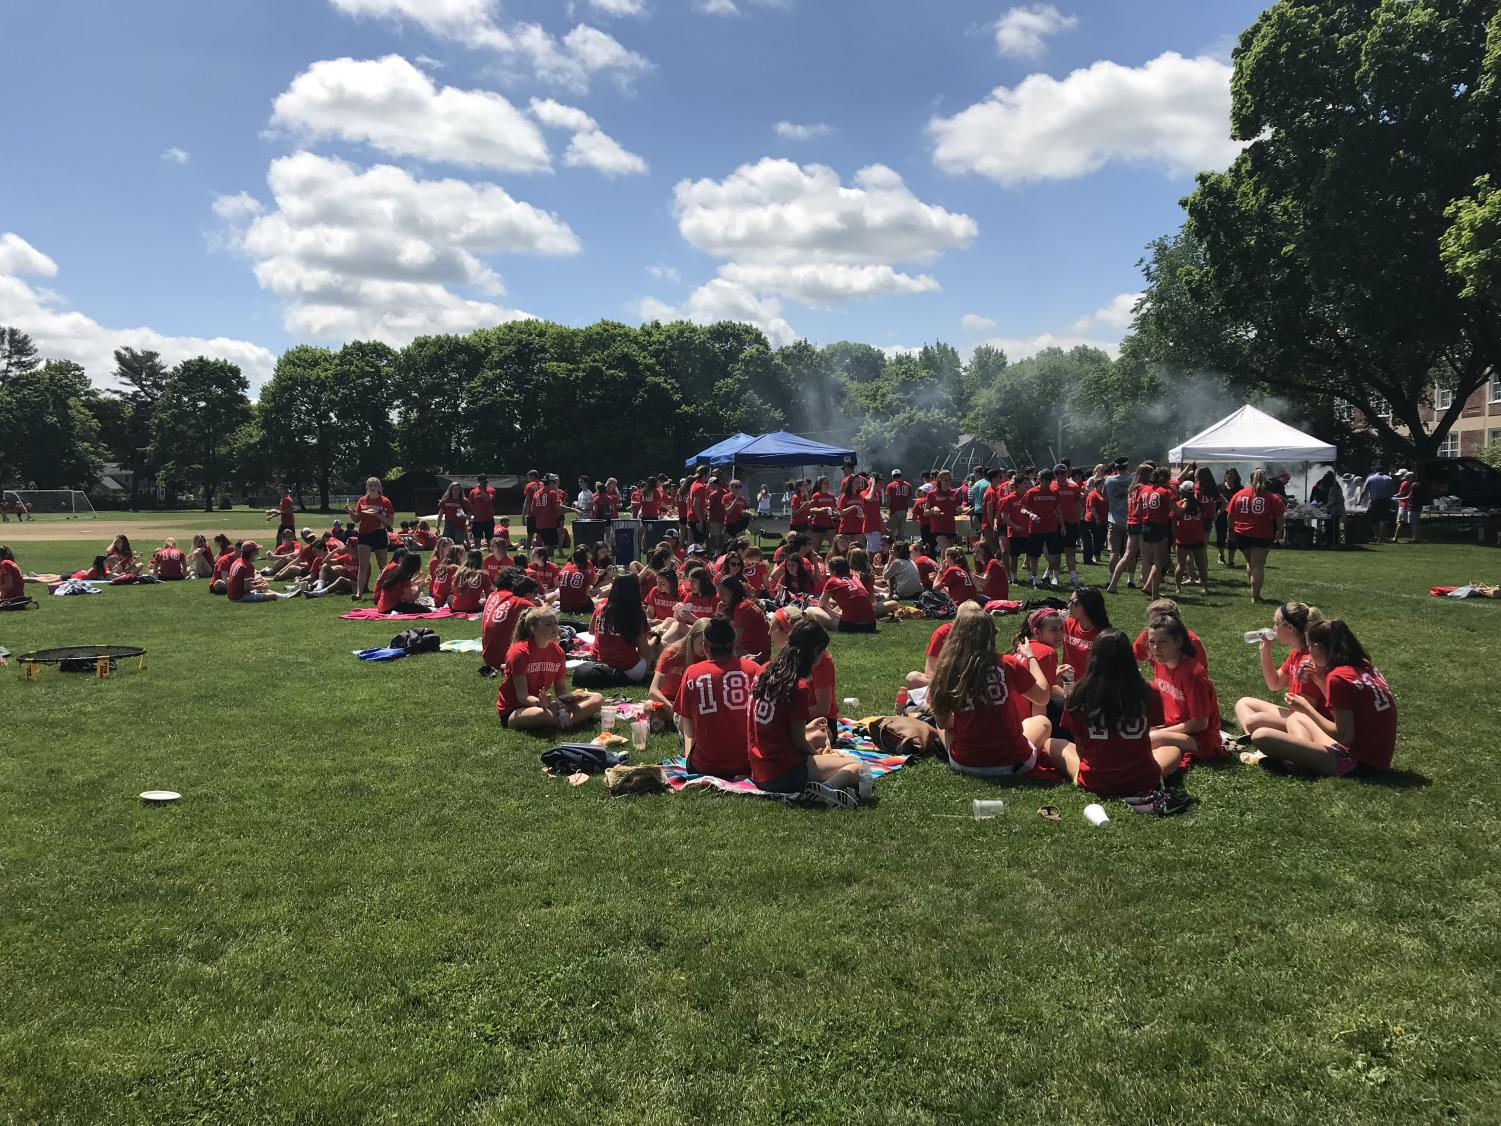 The Class of 2018 enjoys a cookout under the sun. Photo by Rose Papuga.